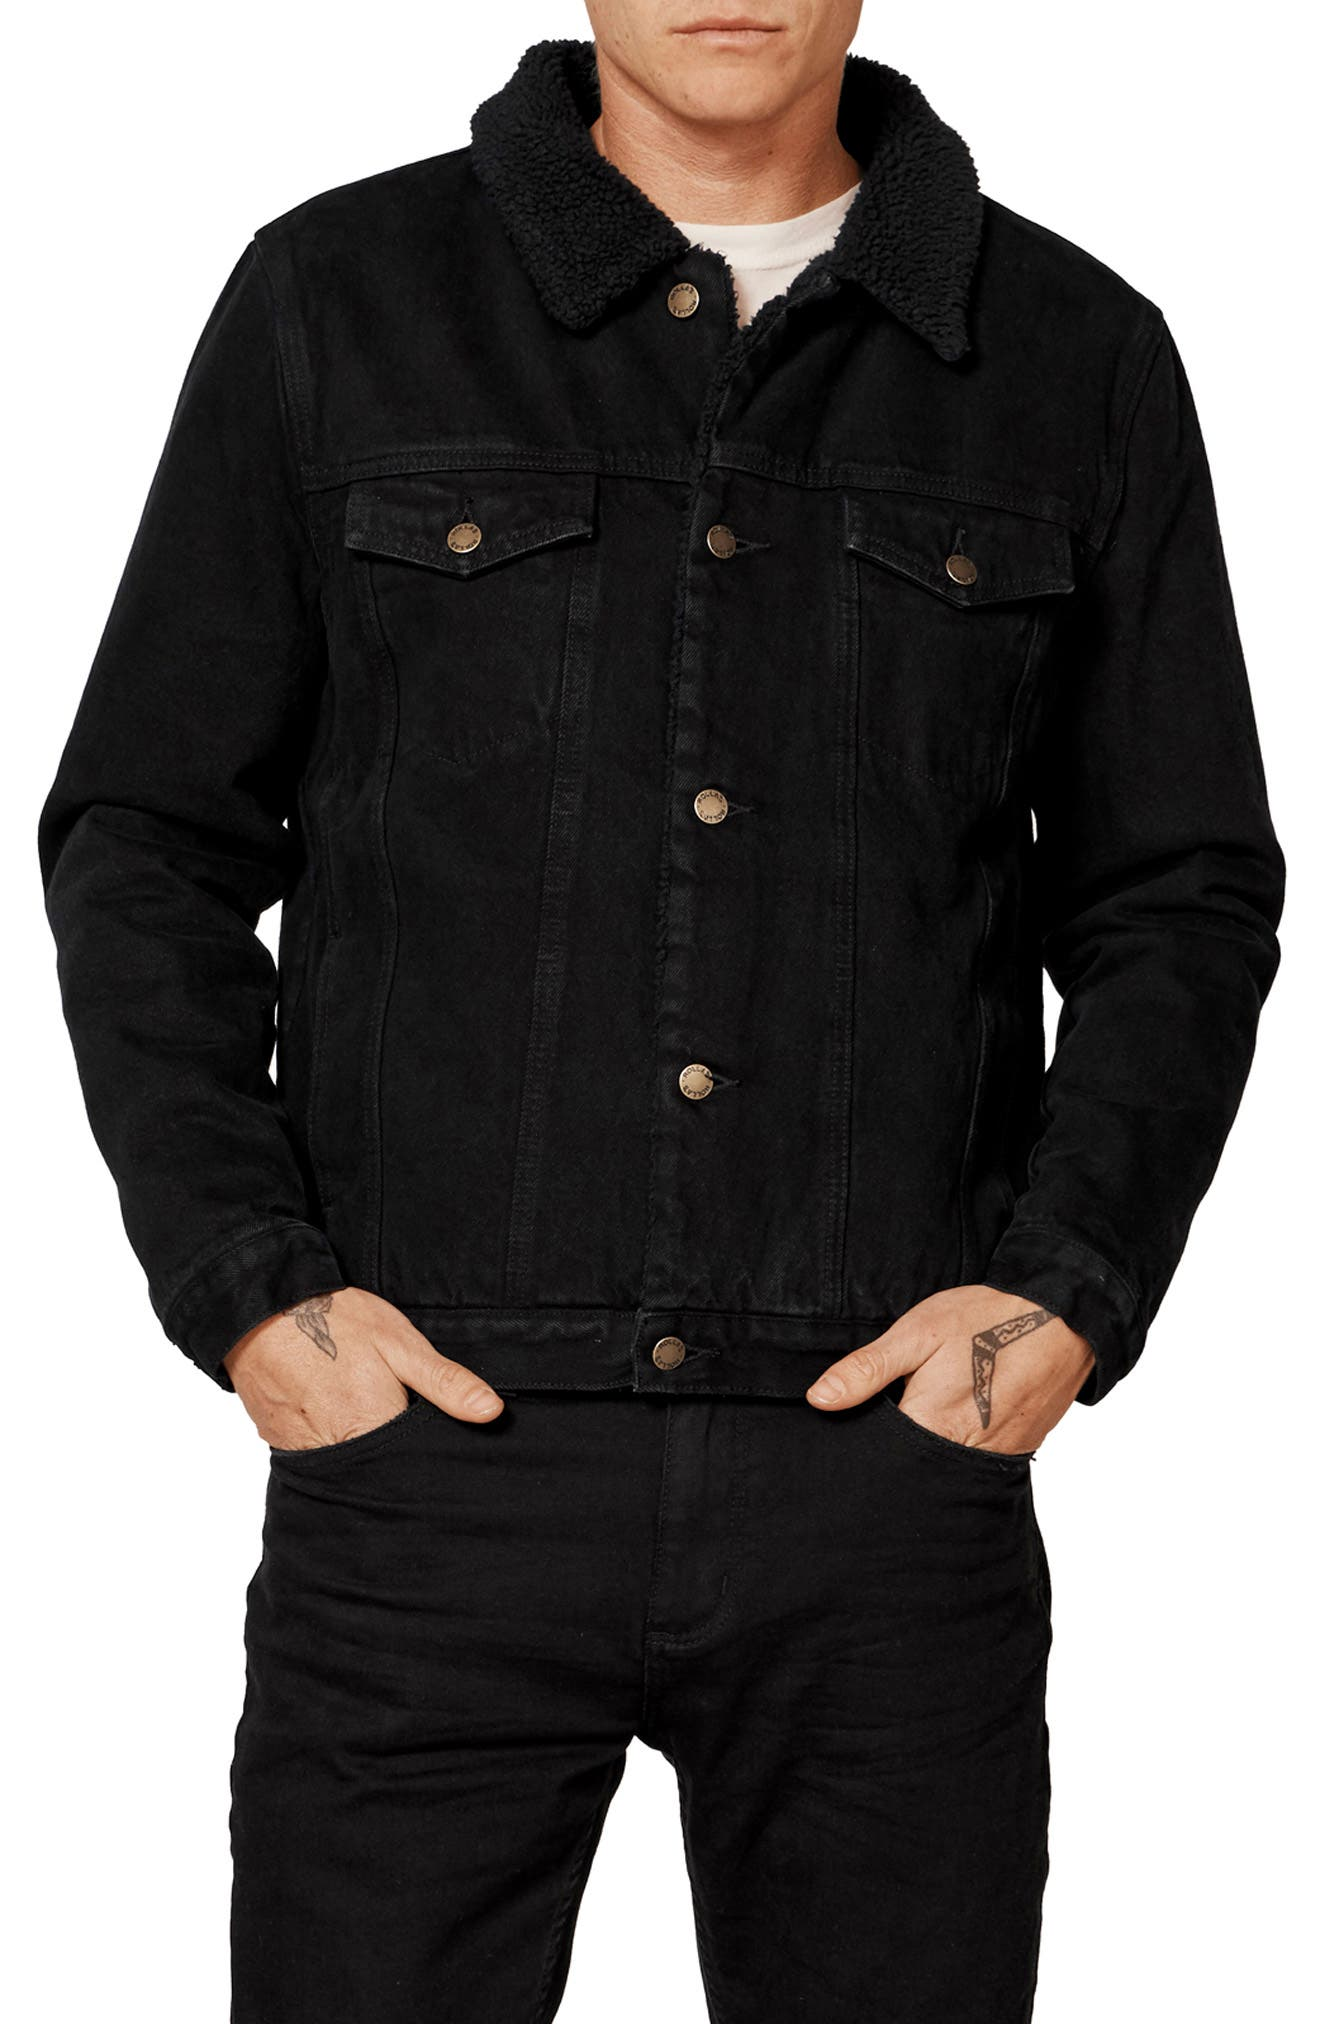 ROLLA'S,                             Lined Denim Jacket,                             Main thumbnail 1, color,                             002